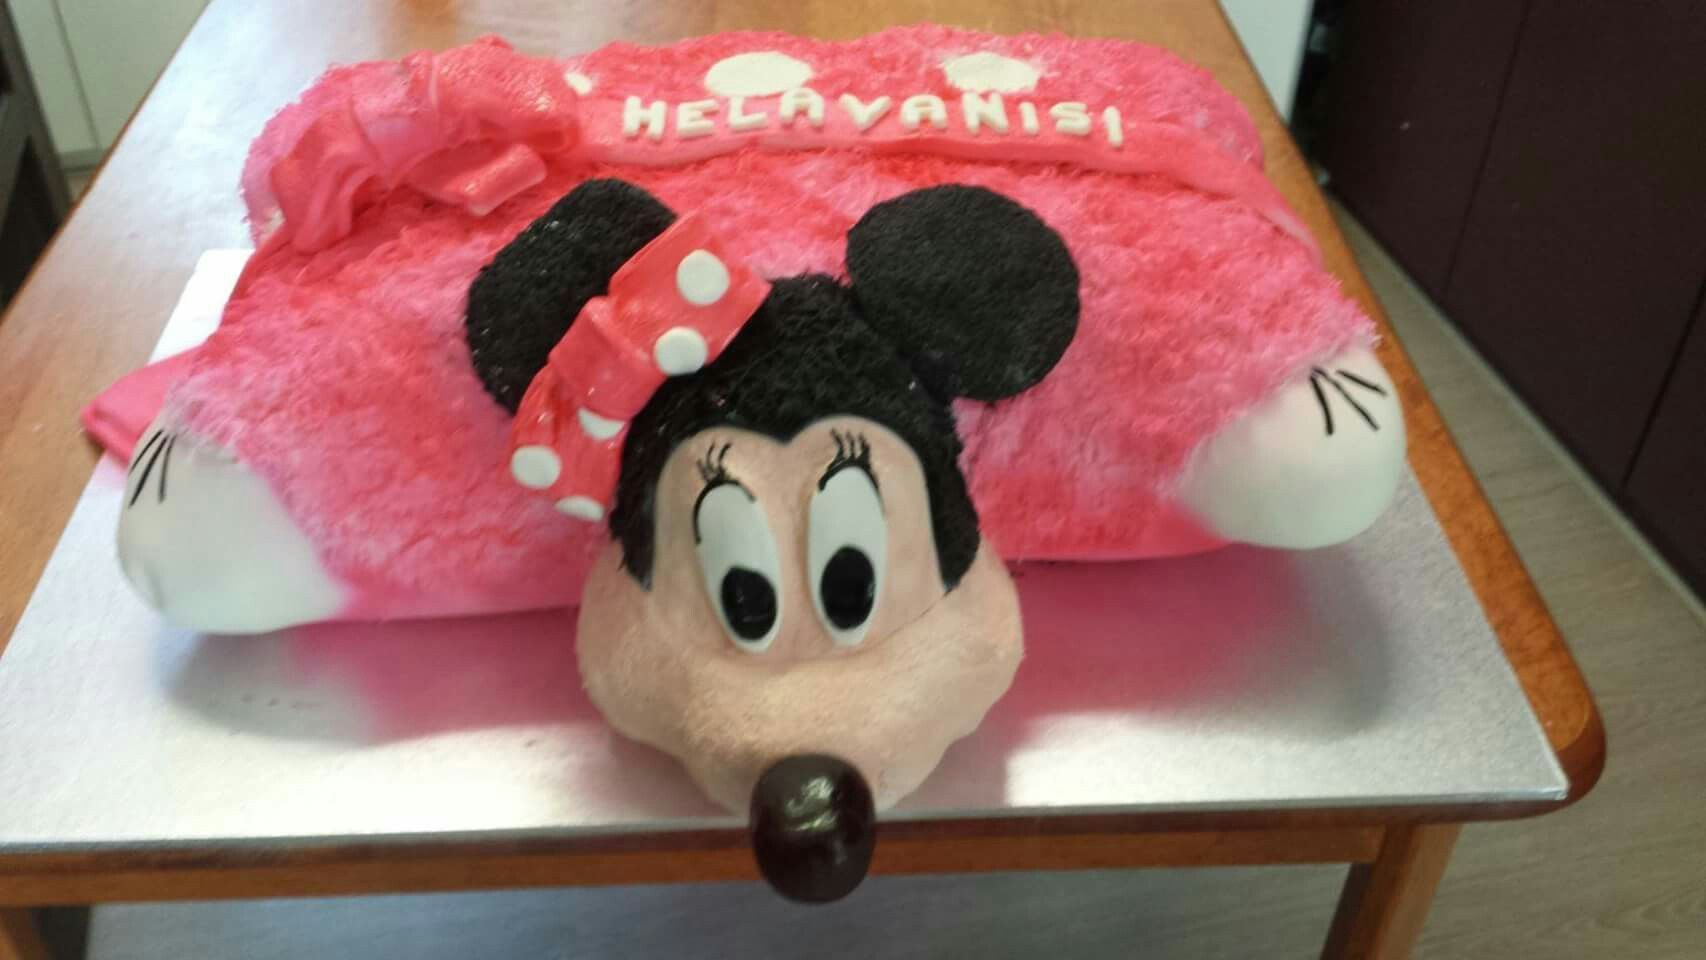 Life size minnie mouse pillow pet cake. All edible.